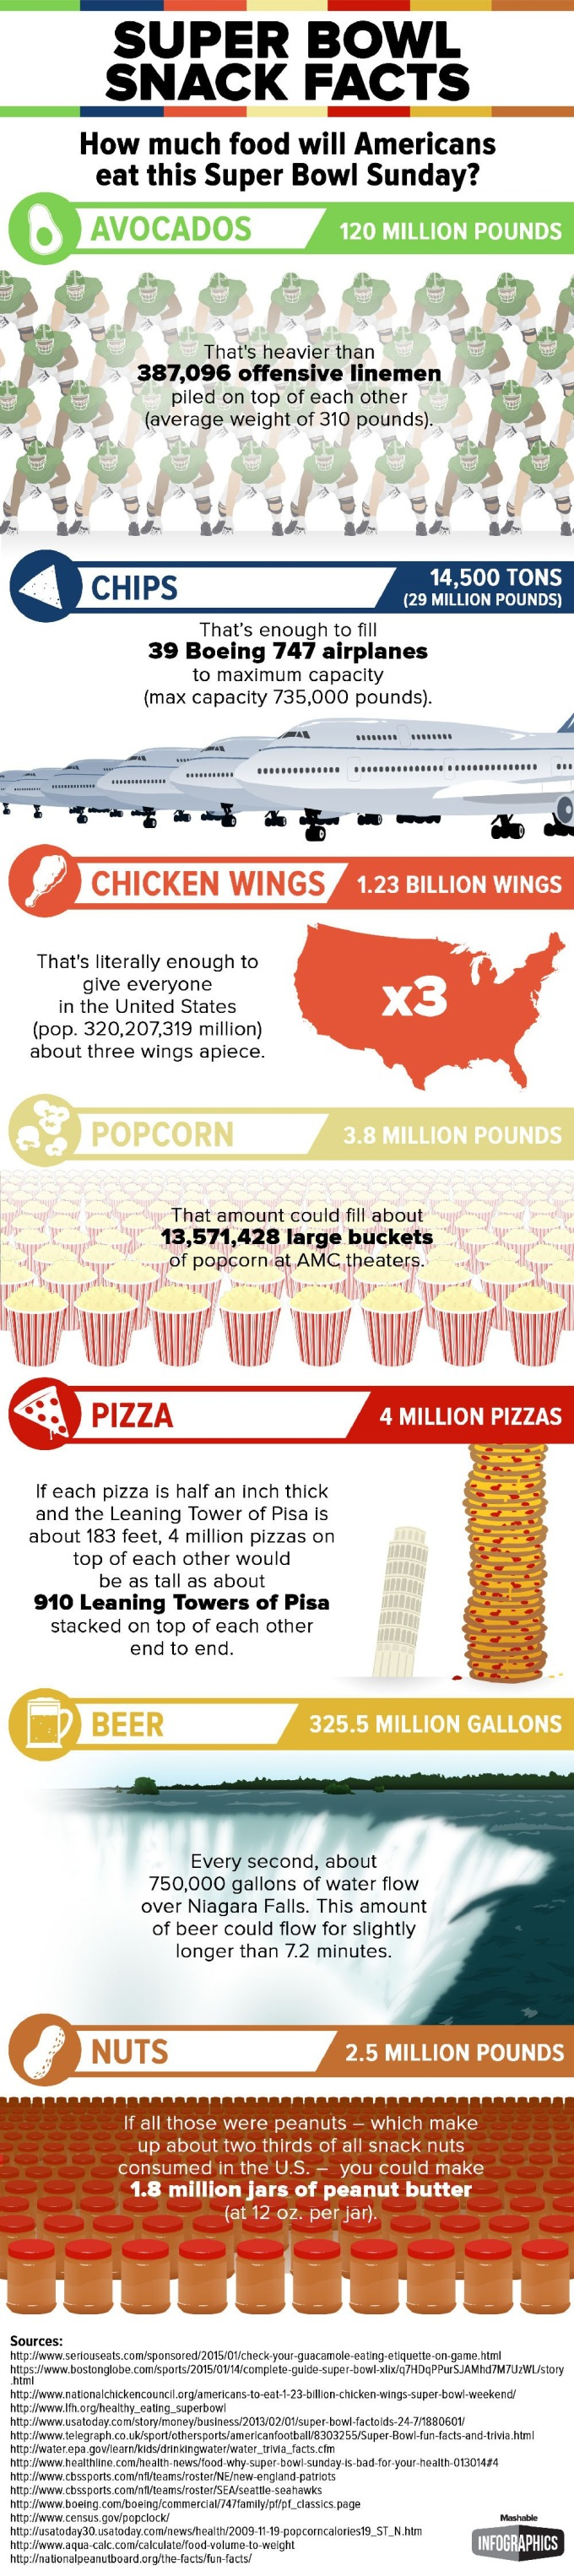 super-bowl-49-snack-facts